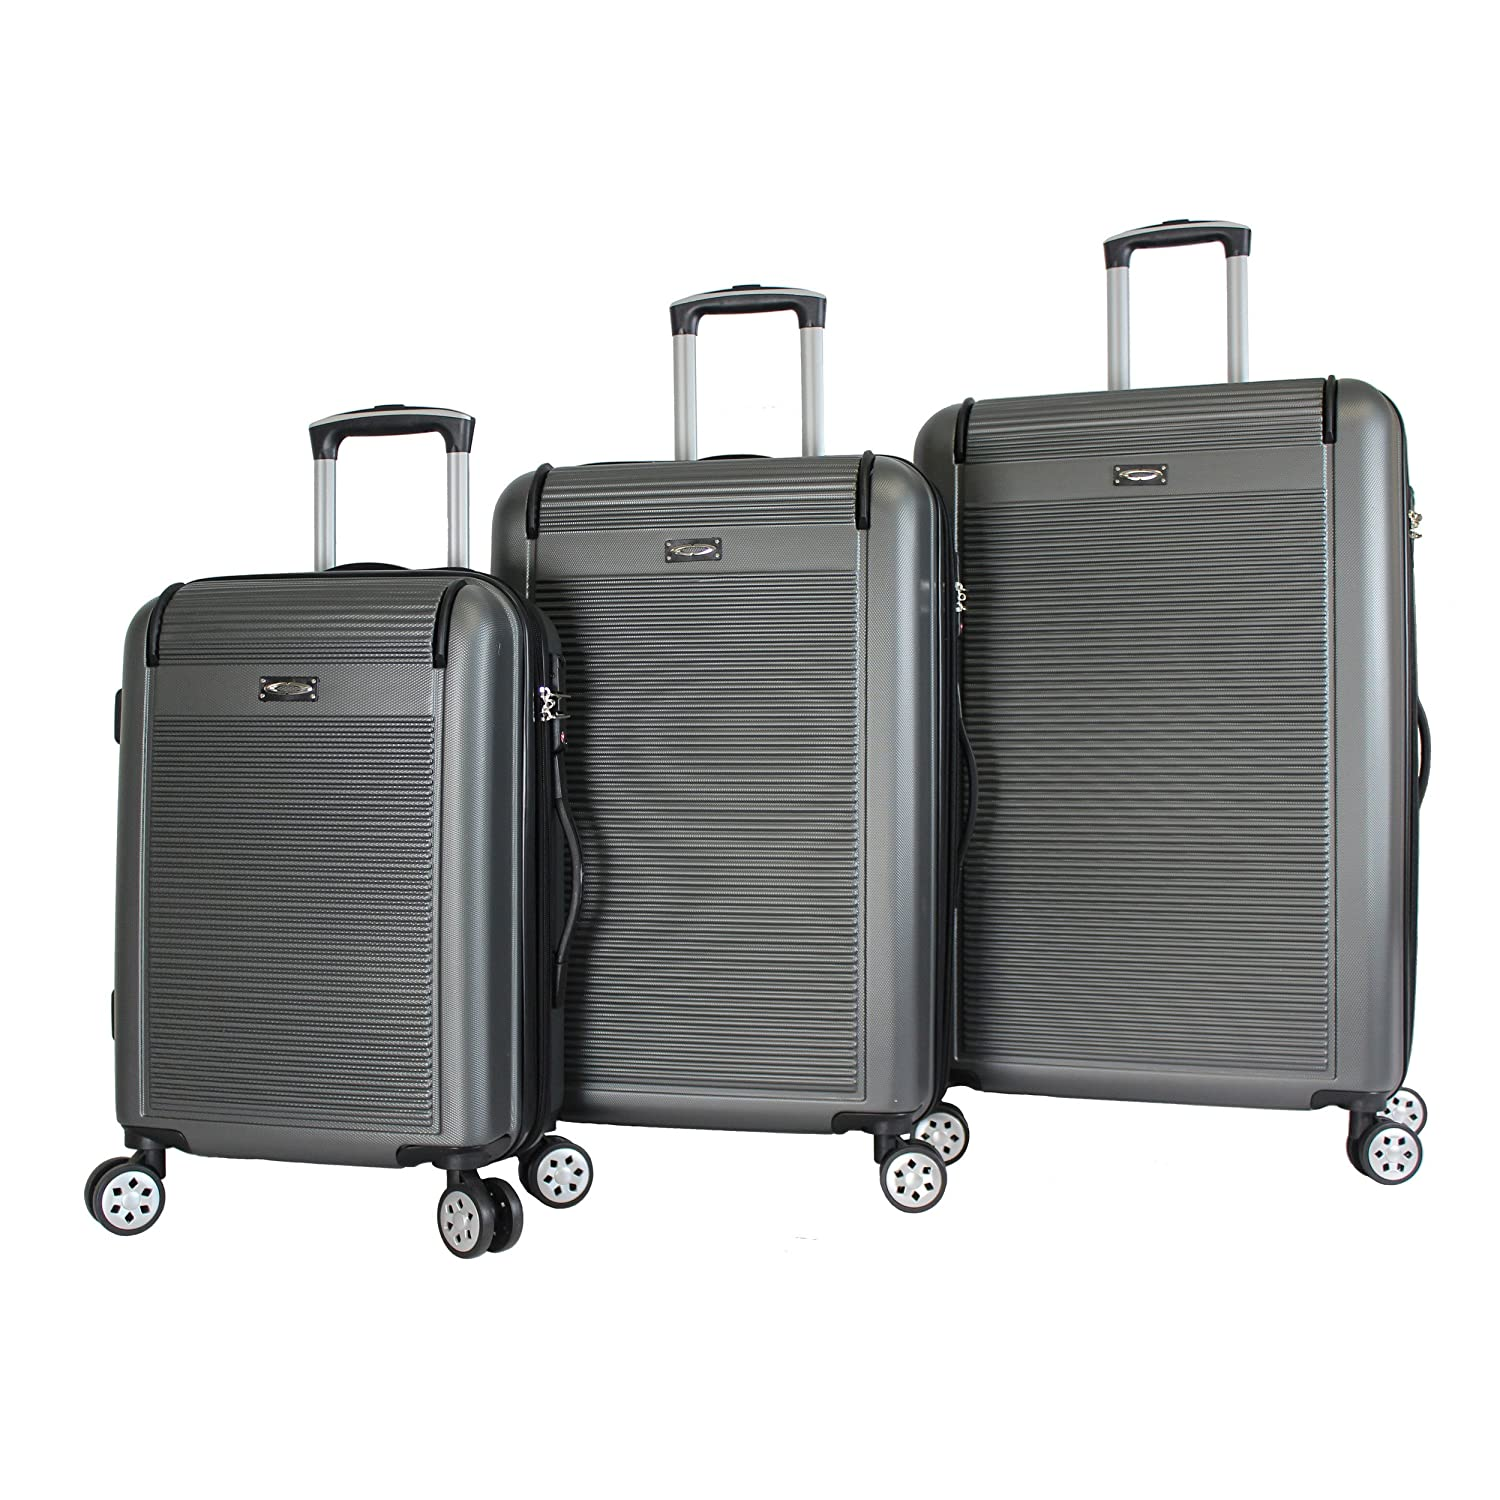 Image of Kemyer 3-Piece Hardside TSA Lock Lightweight Spinner Rolling Luggage Set Luggage